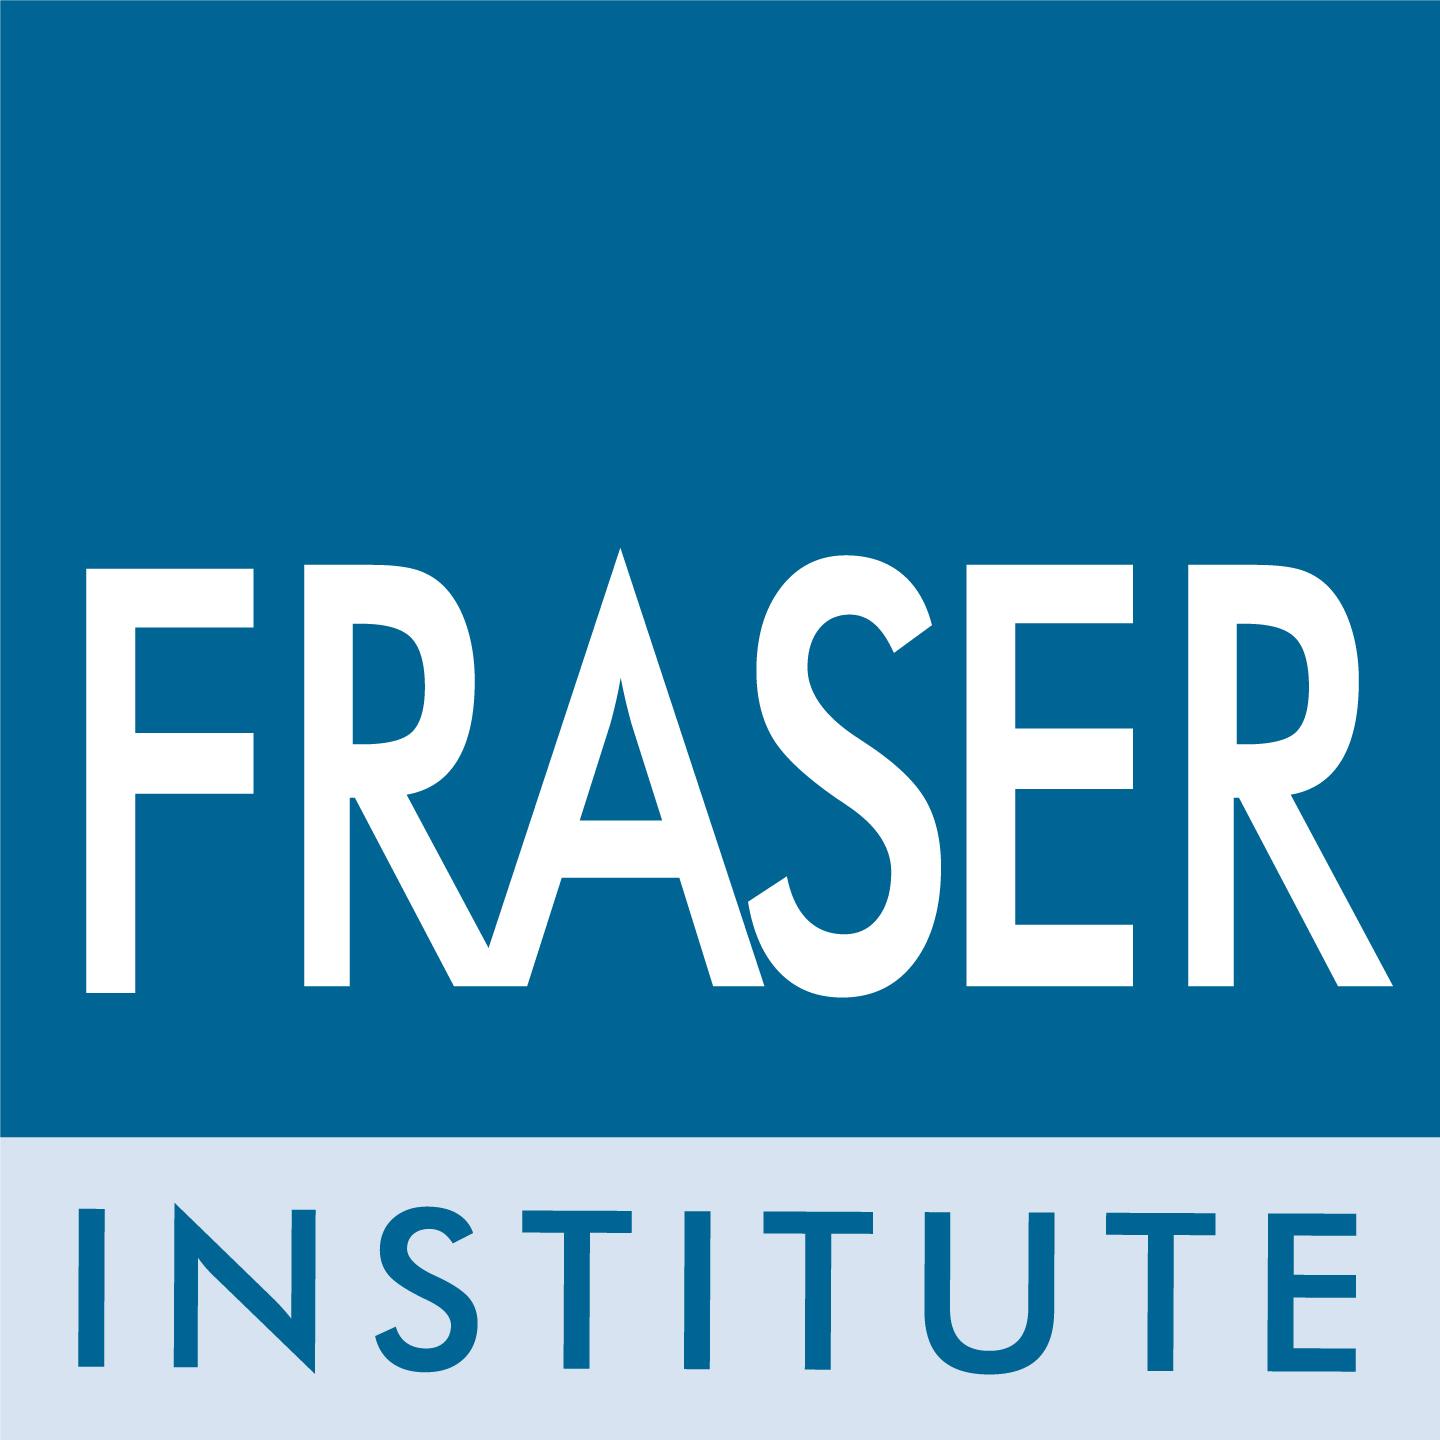 Fraser Institute News Release: Spending on public schools in Ontario increasing faster than national average